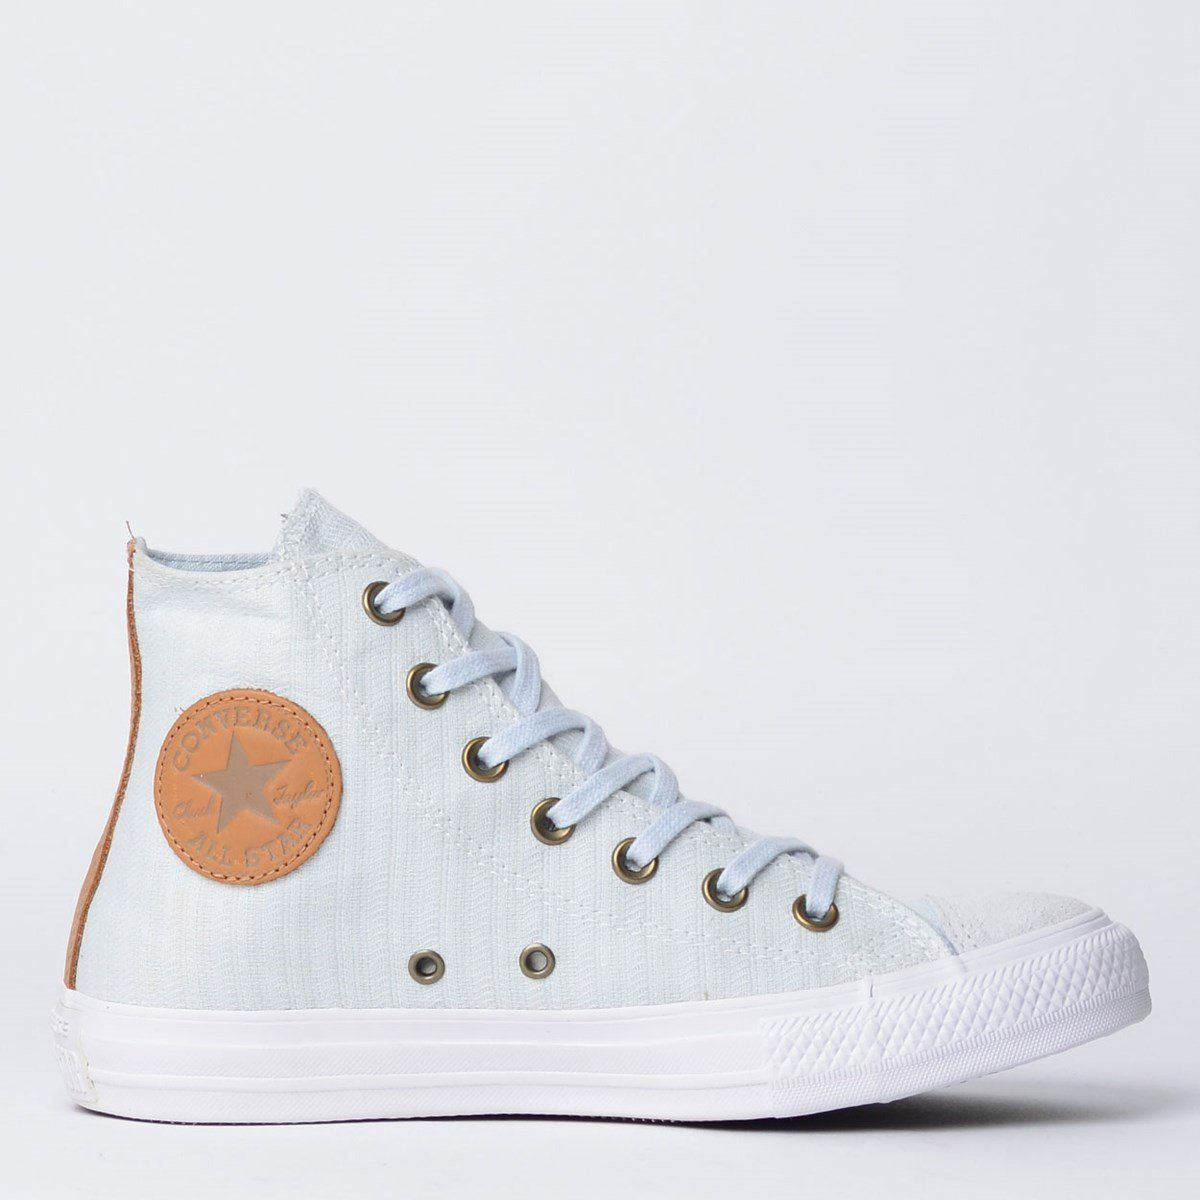 ddee43a68 Tênis Converse Chuck Taylor All Star Hi Cinza Puro Caramelo - Overcome  Clothing